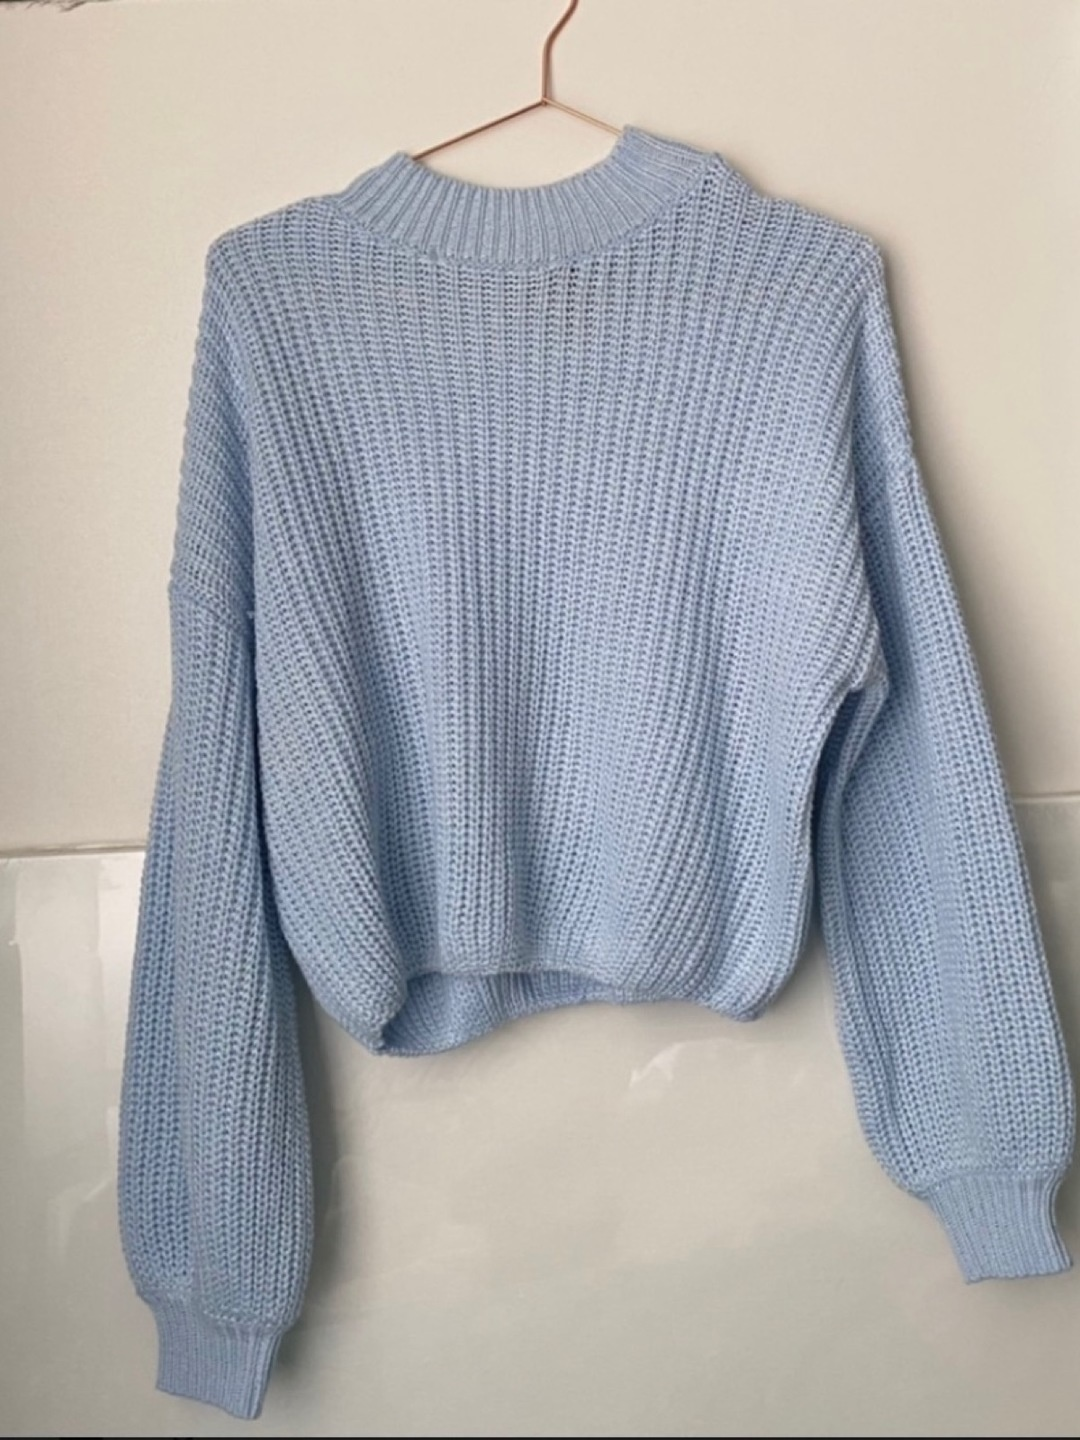 Women's jumpers & cardigans - FOREVER 21 photo 1